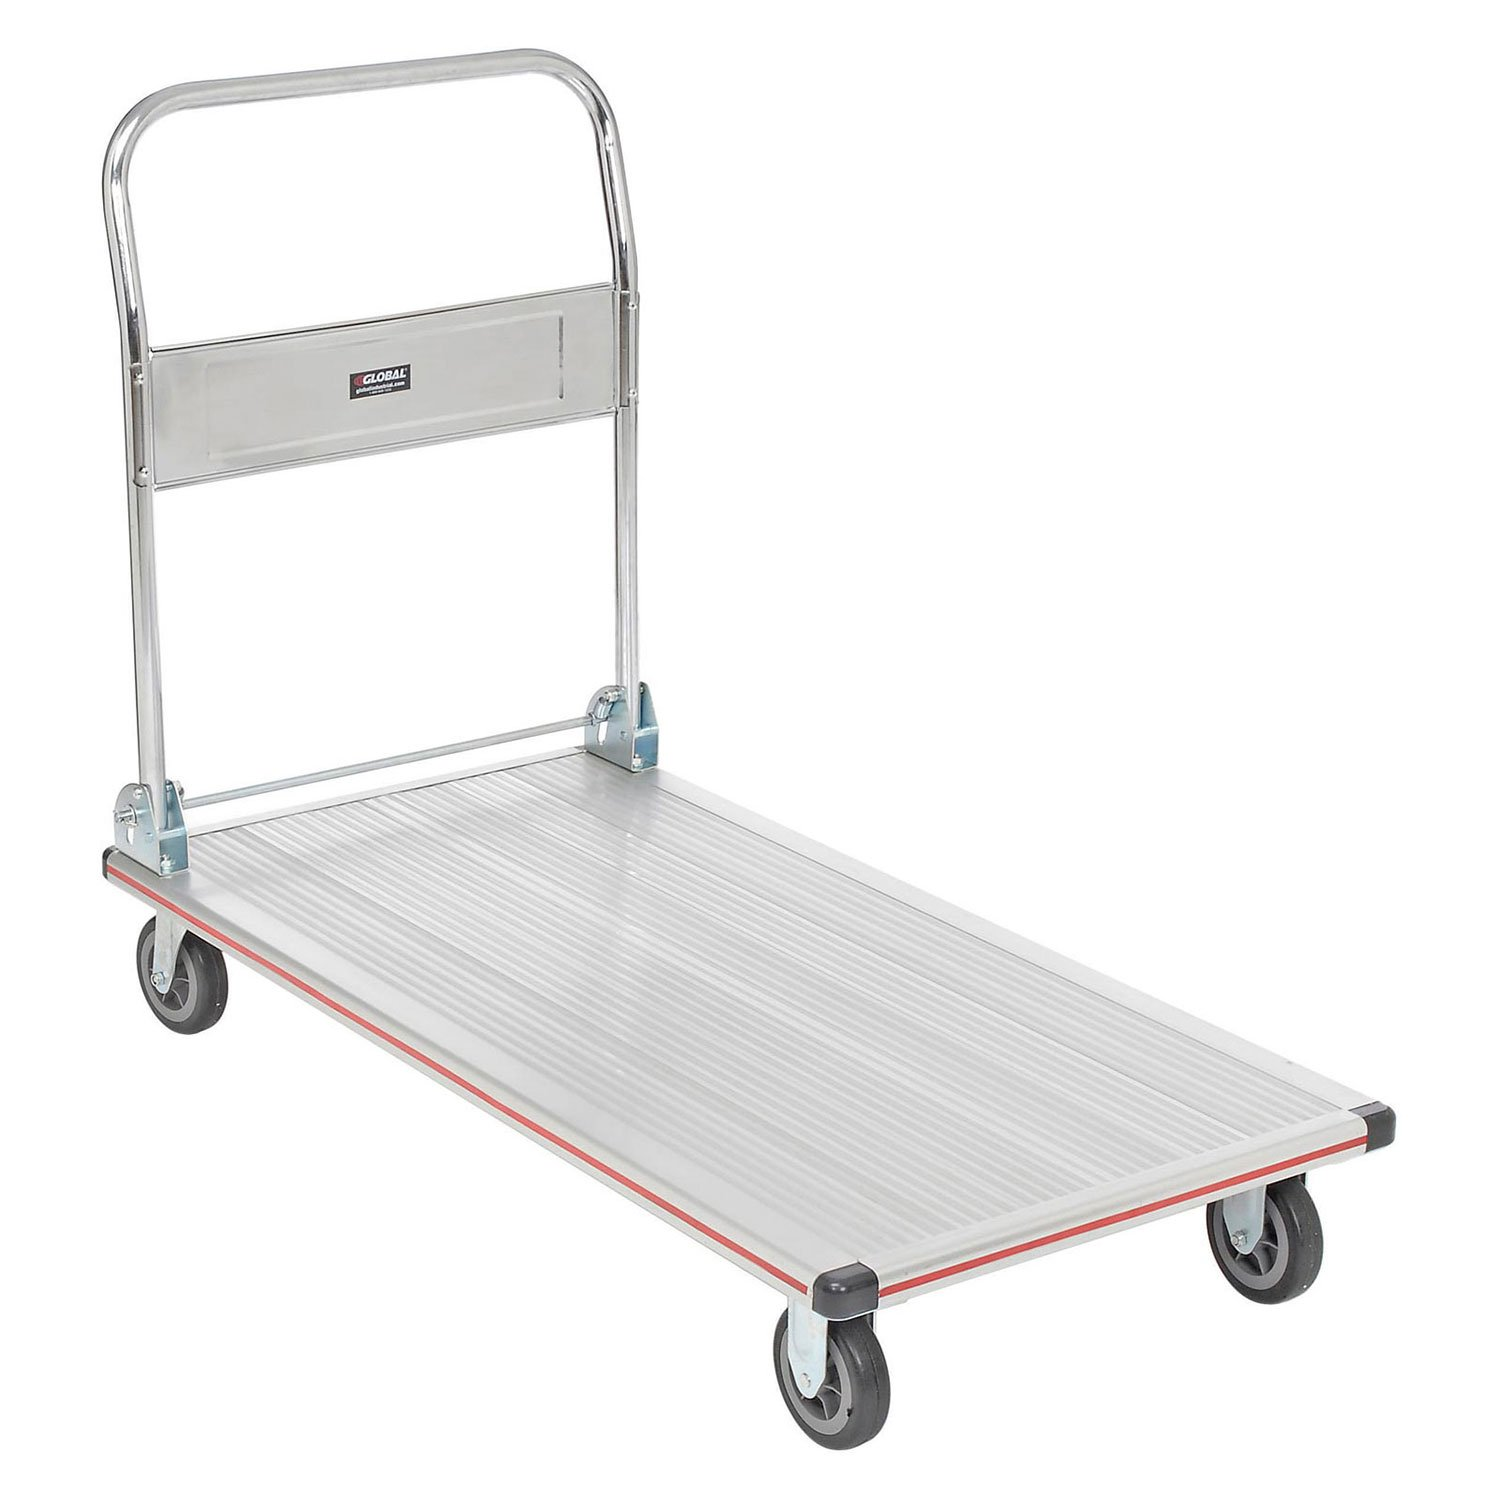 Folding Platform Truck, Aluminum, 48 x 24, 600 Lb. Capacity by Global Industrial